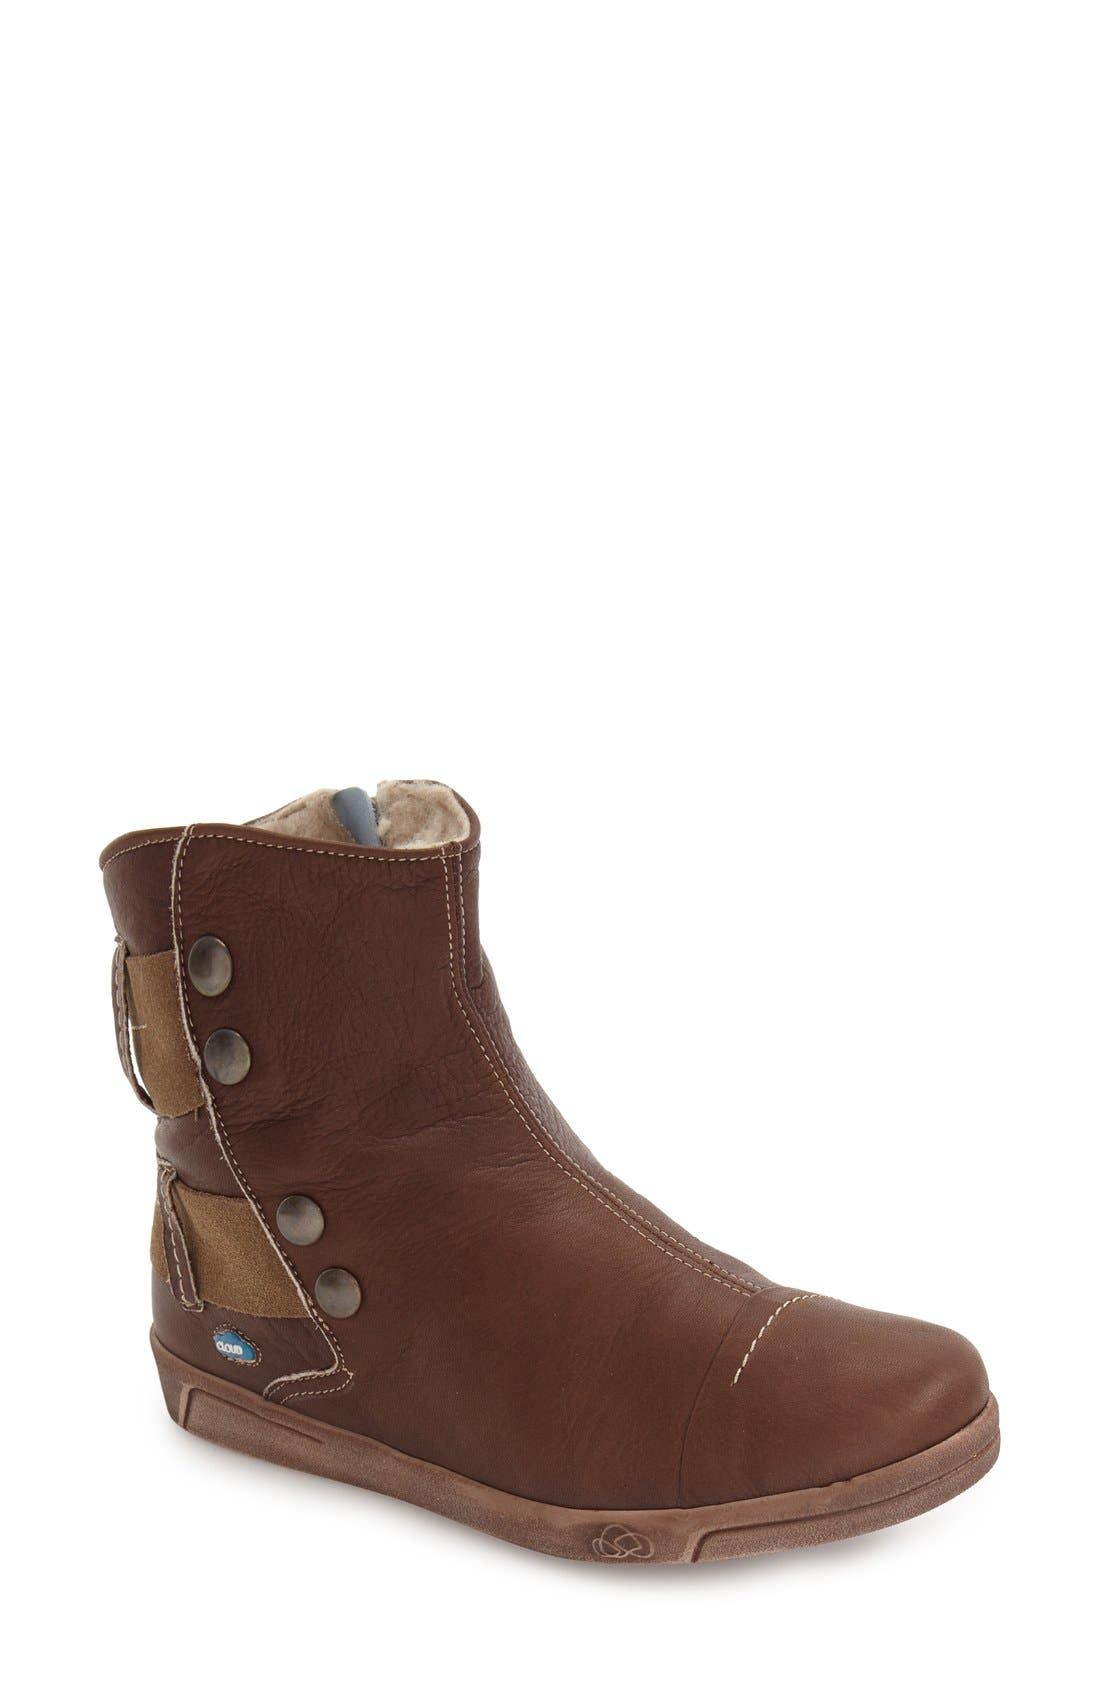 Cloud Aline Fantasy Shearling Lined Boot - Brown